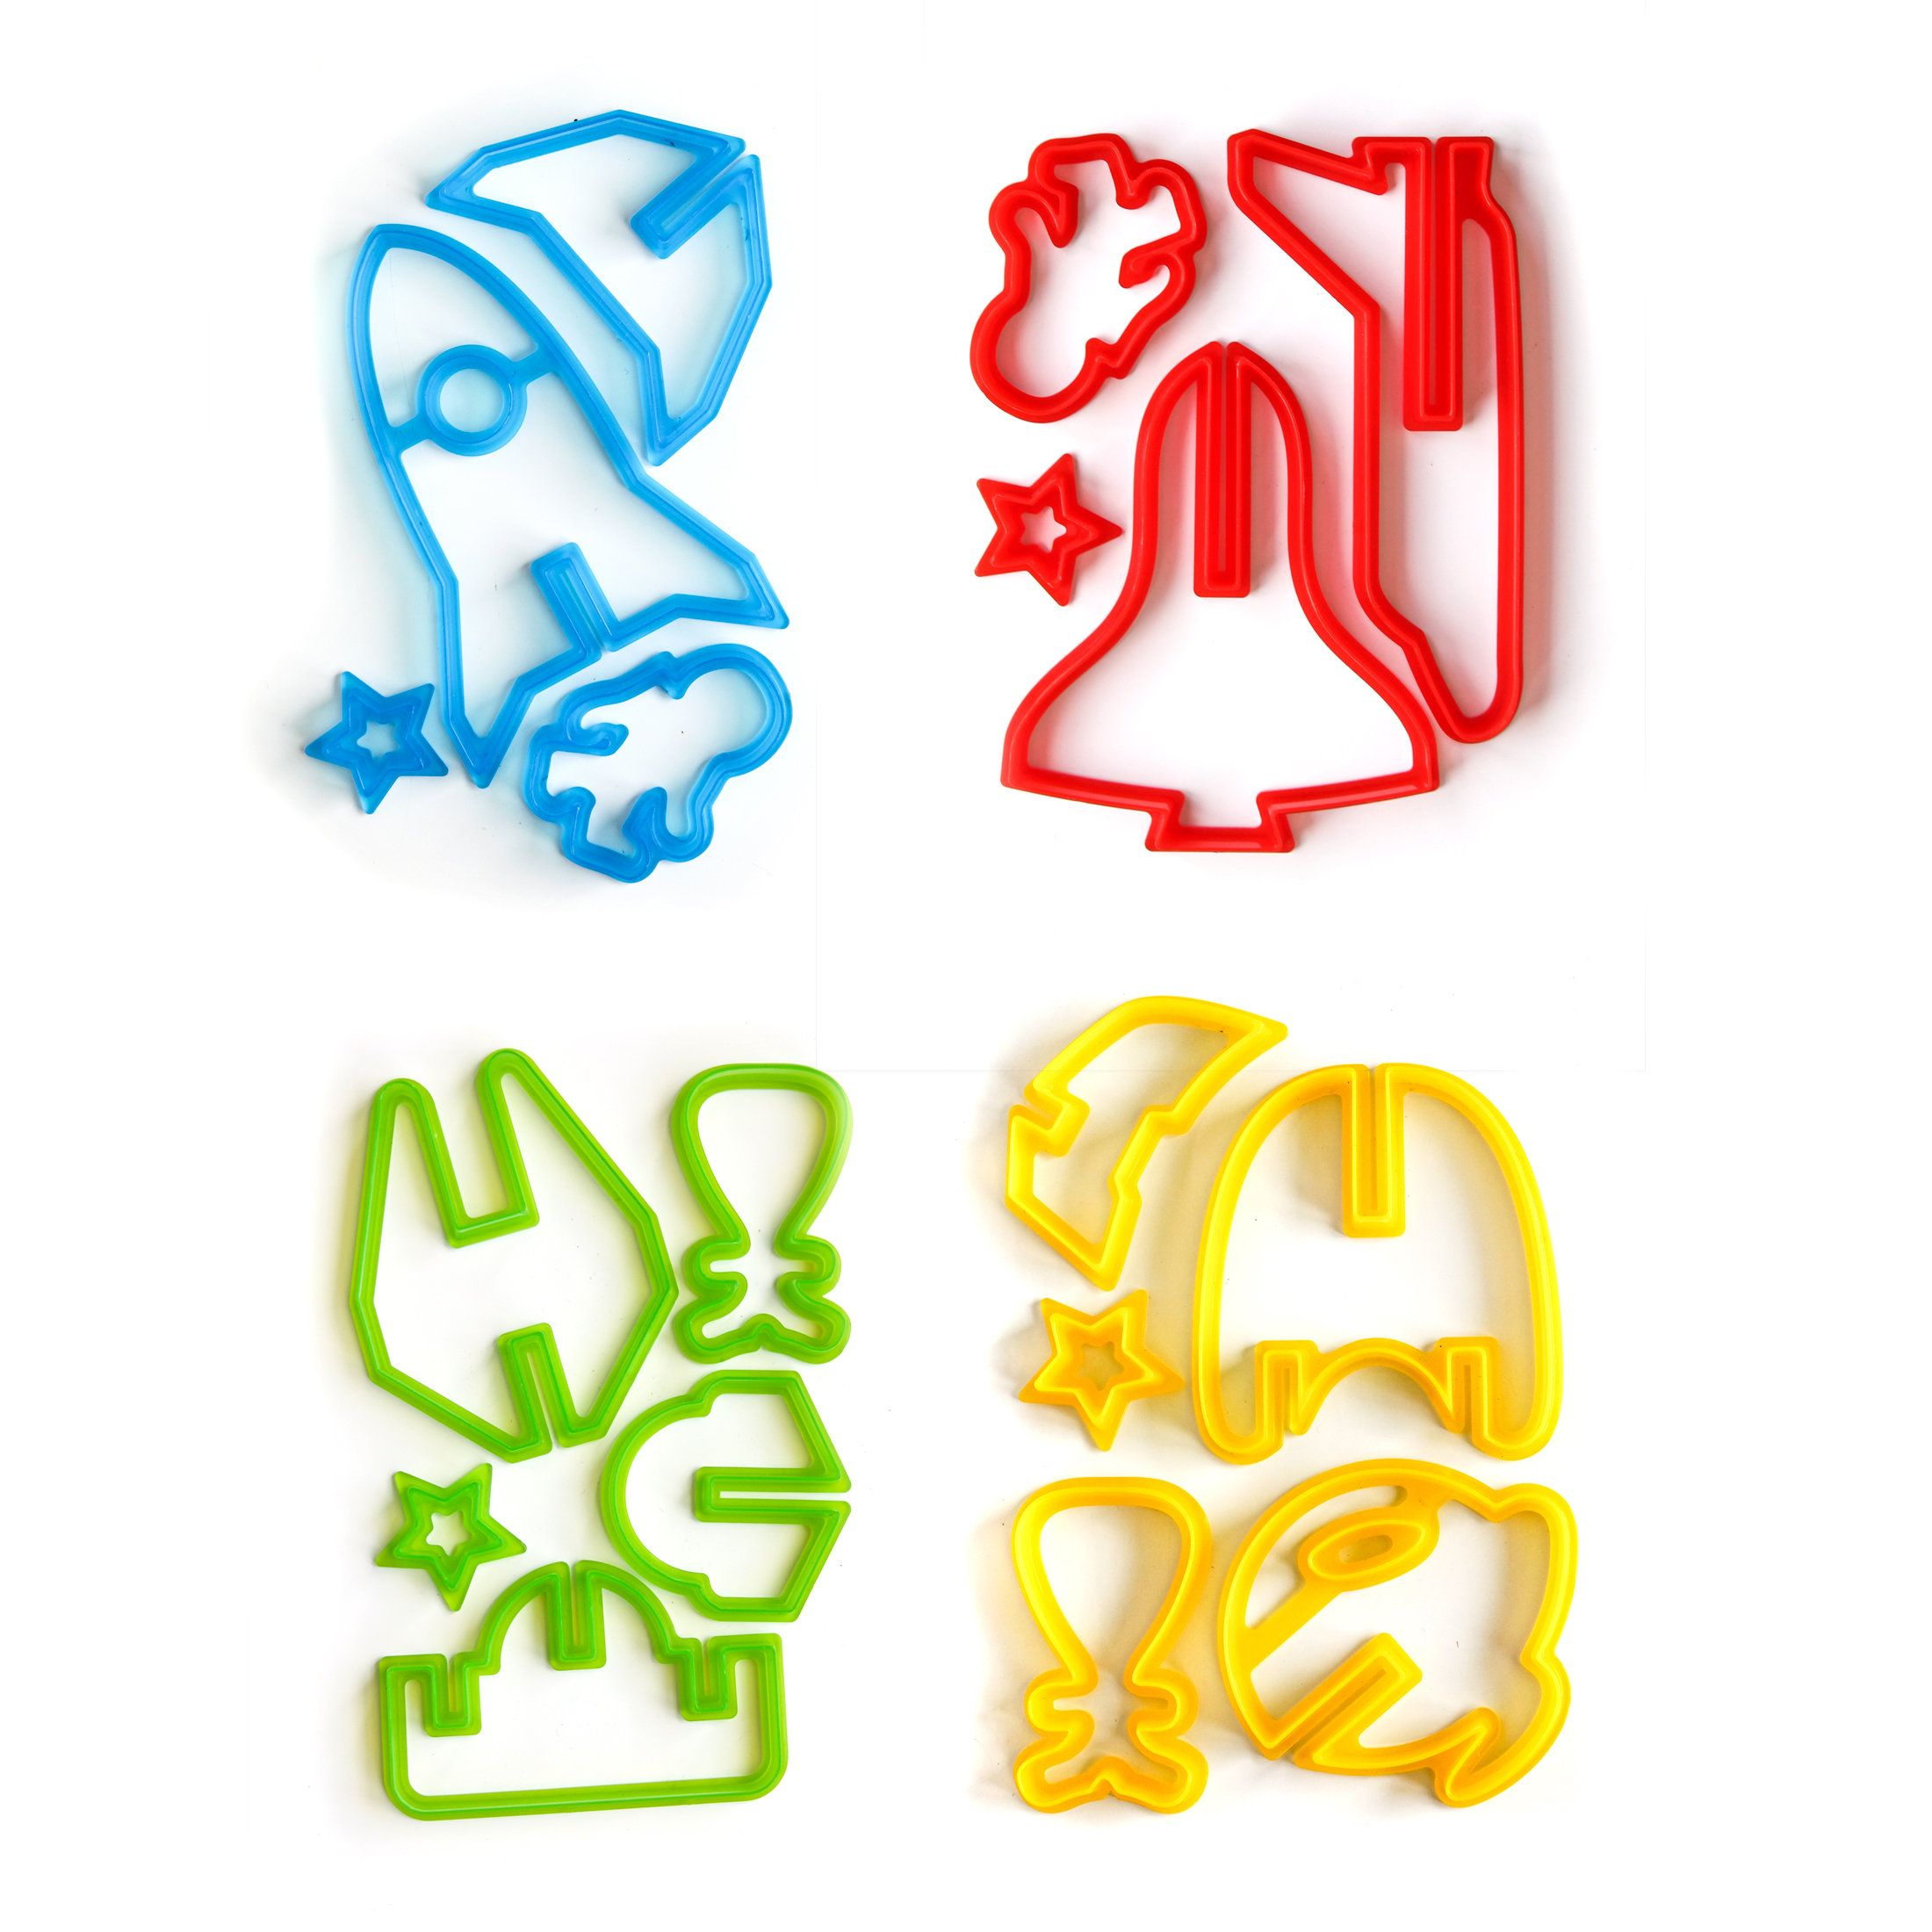 3D cookie space cookie cutters